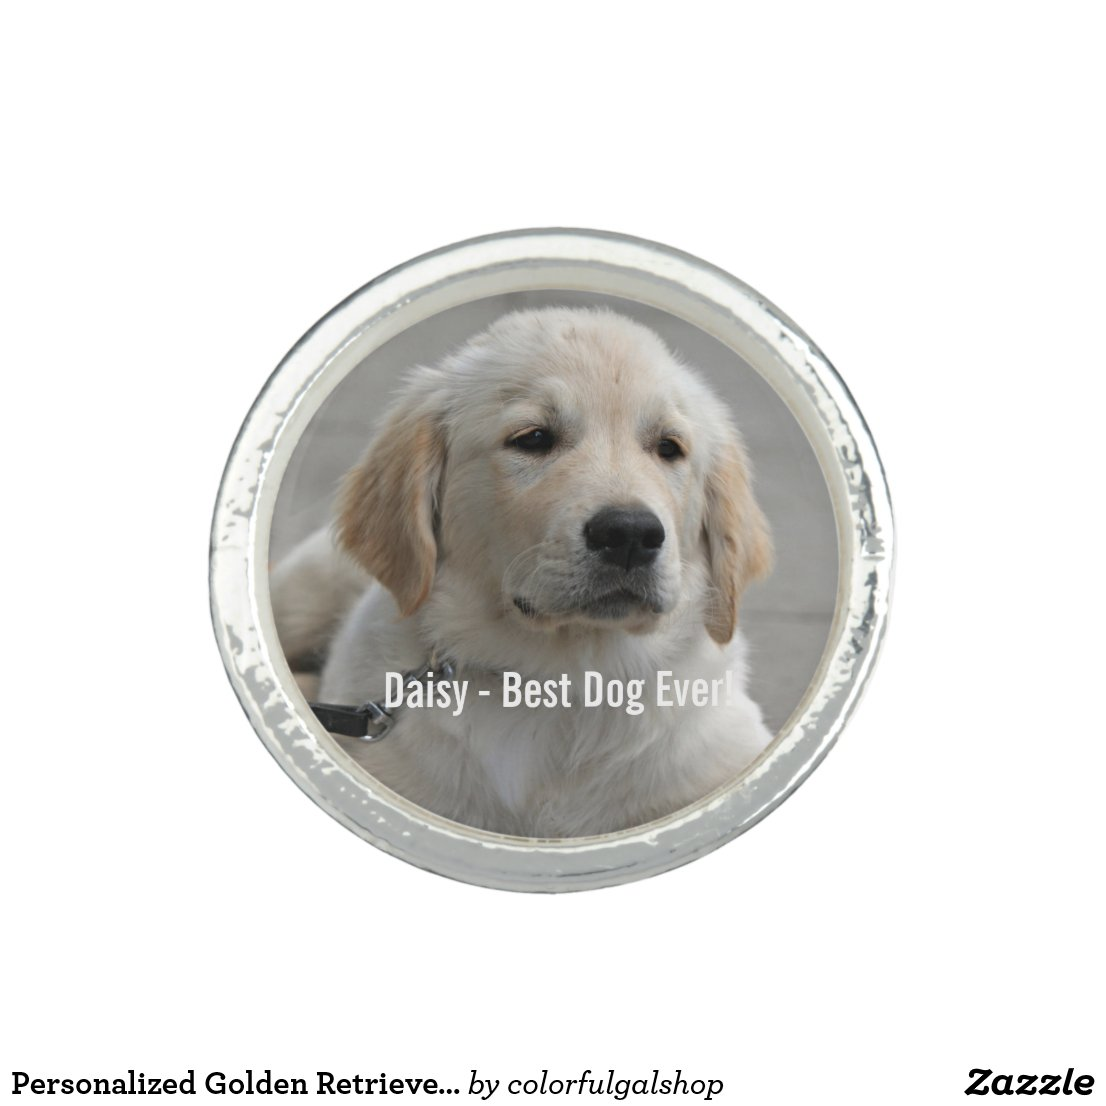 Personalised Golden Retriever Dog Photo and Name